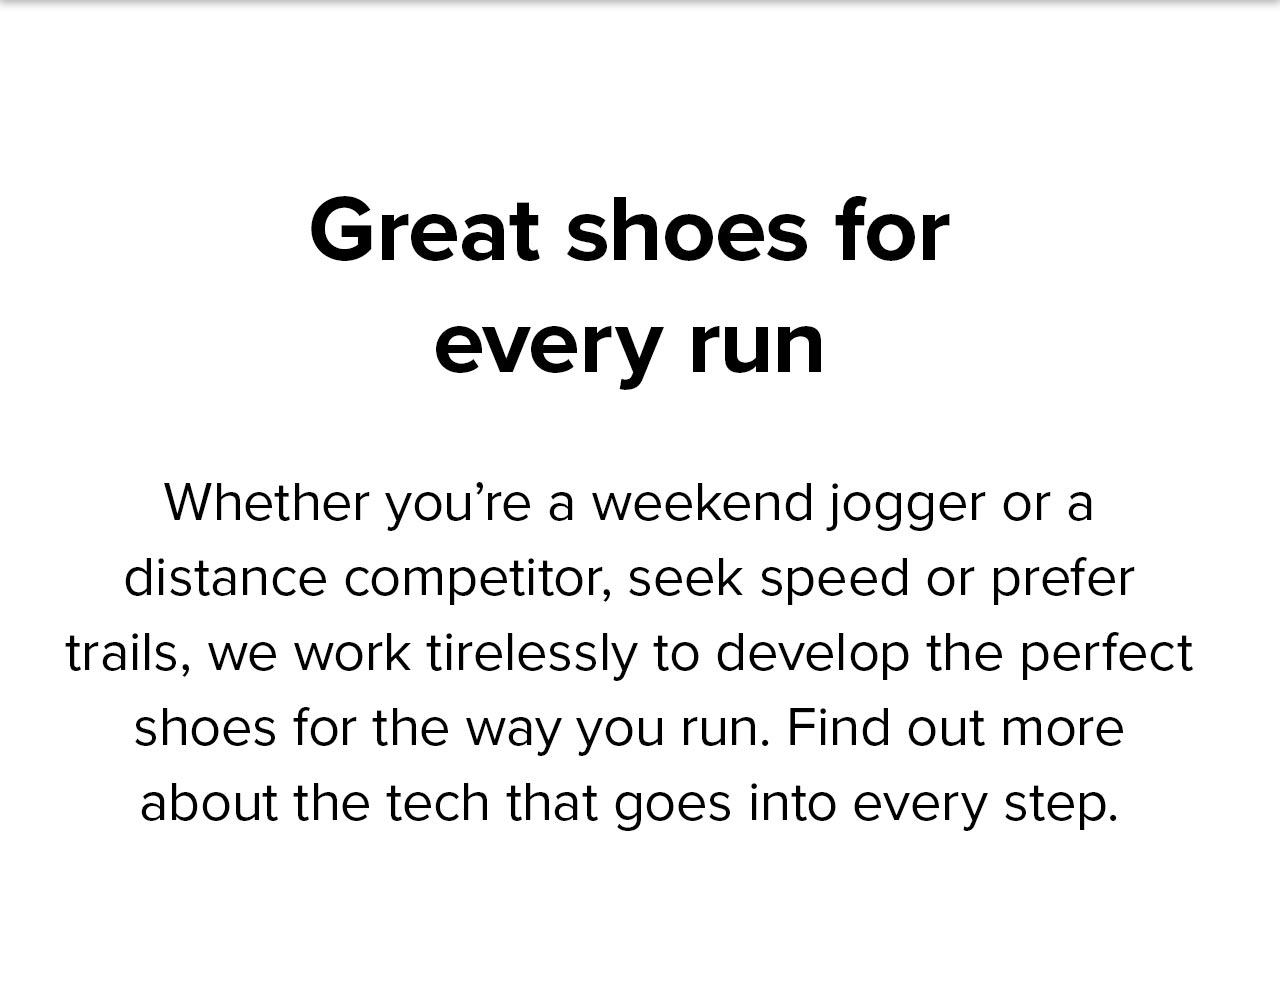 Great shoes for every run